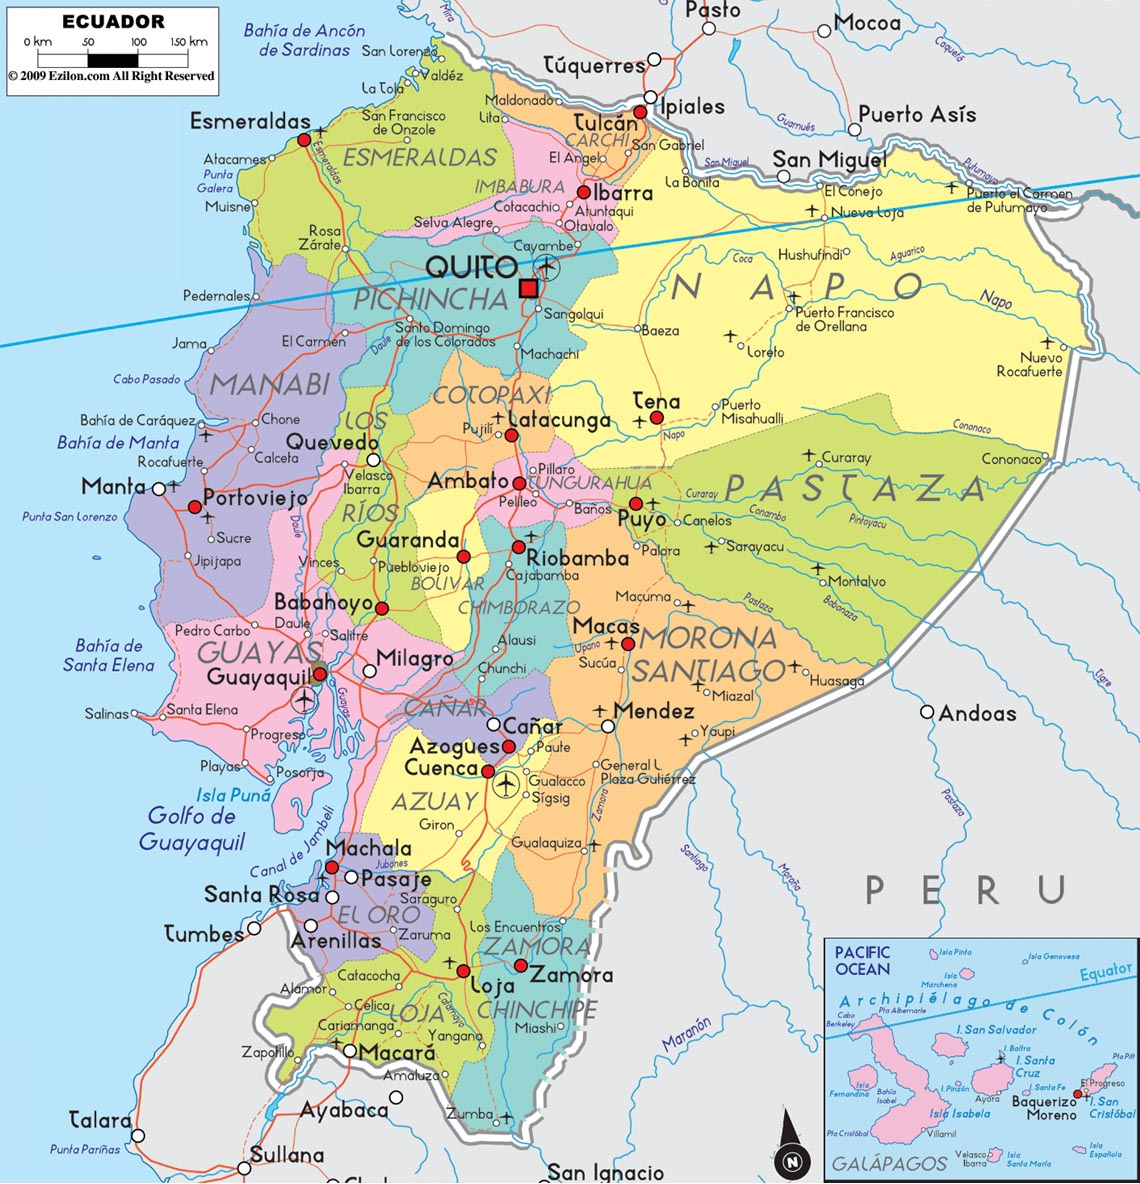 equador mapa Mapas do Equador | MapasBlog equador mapa